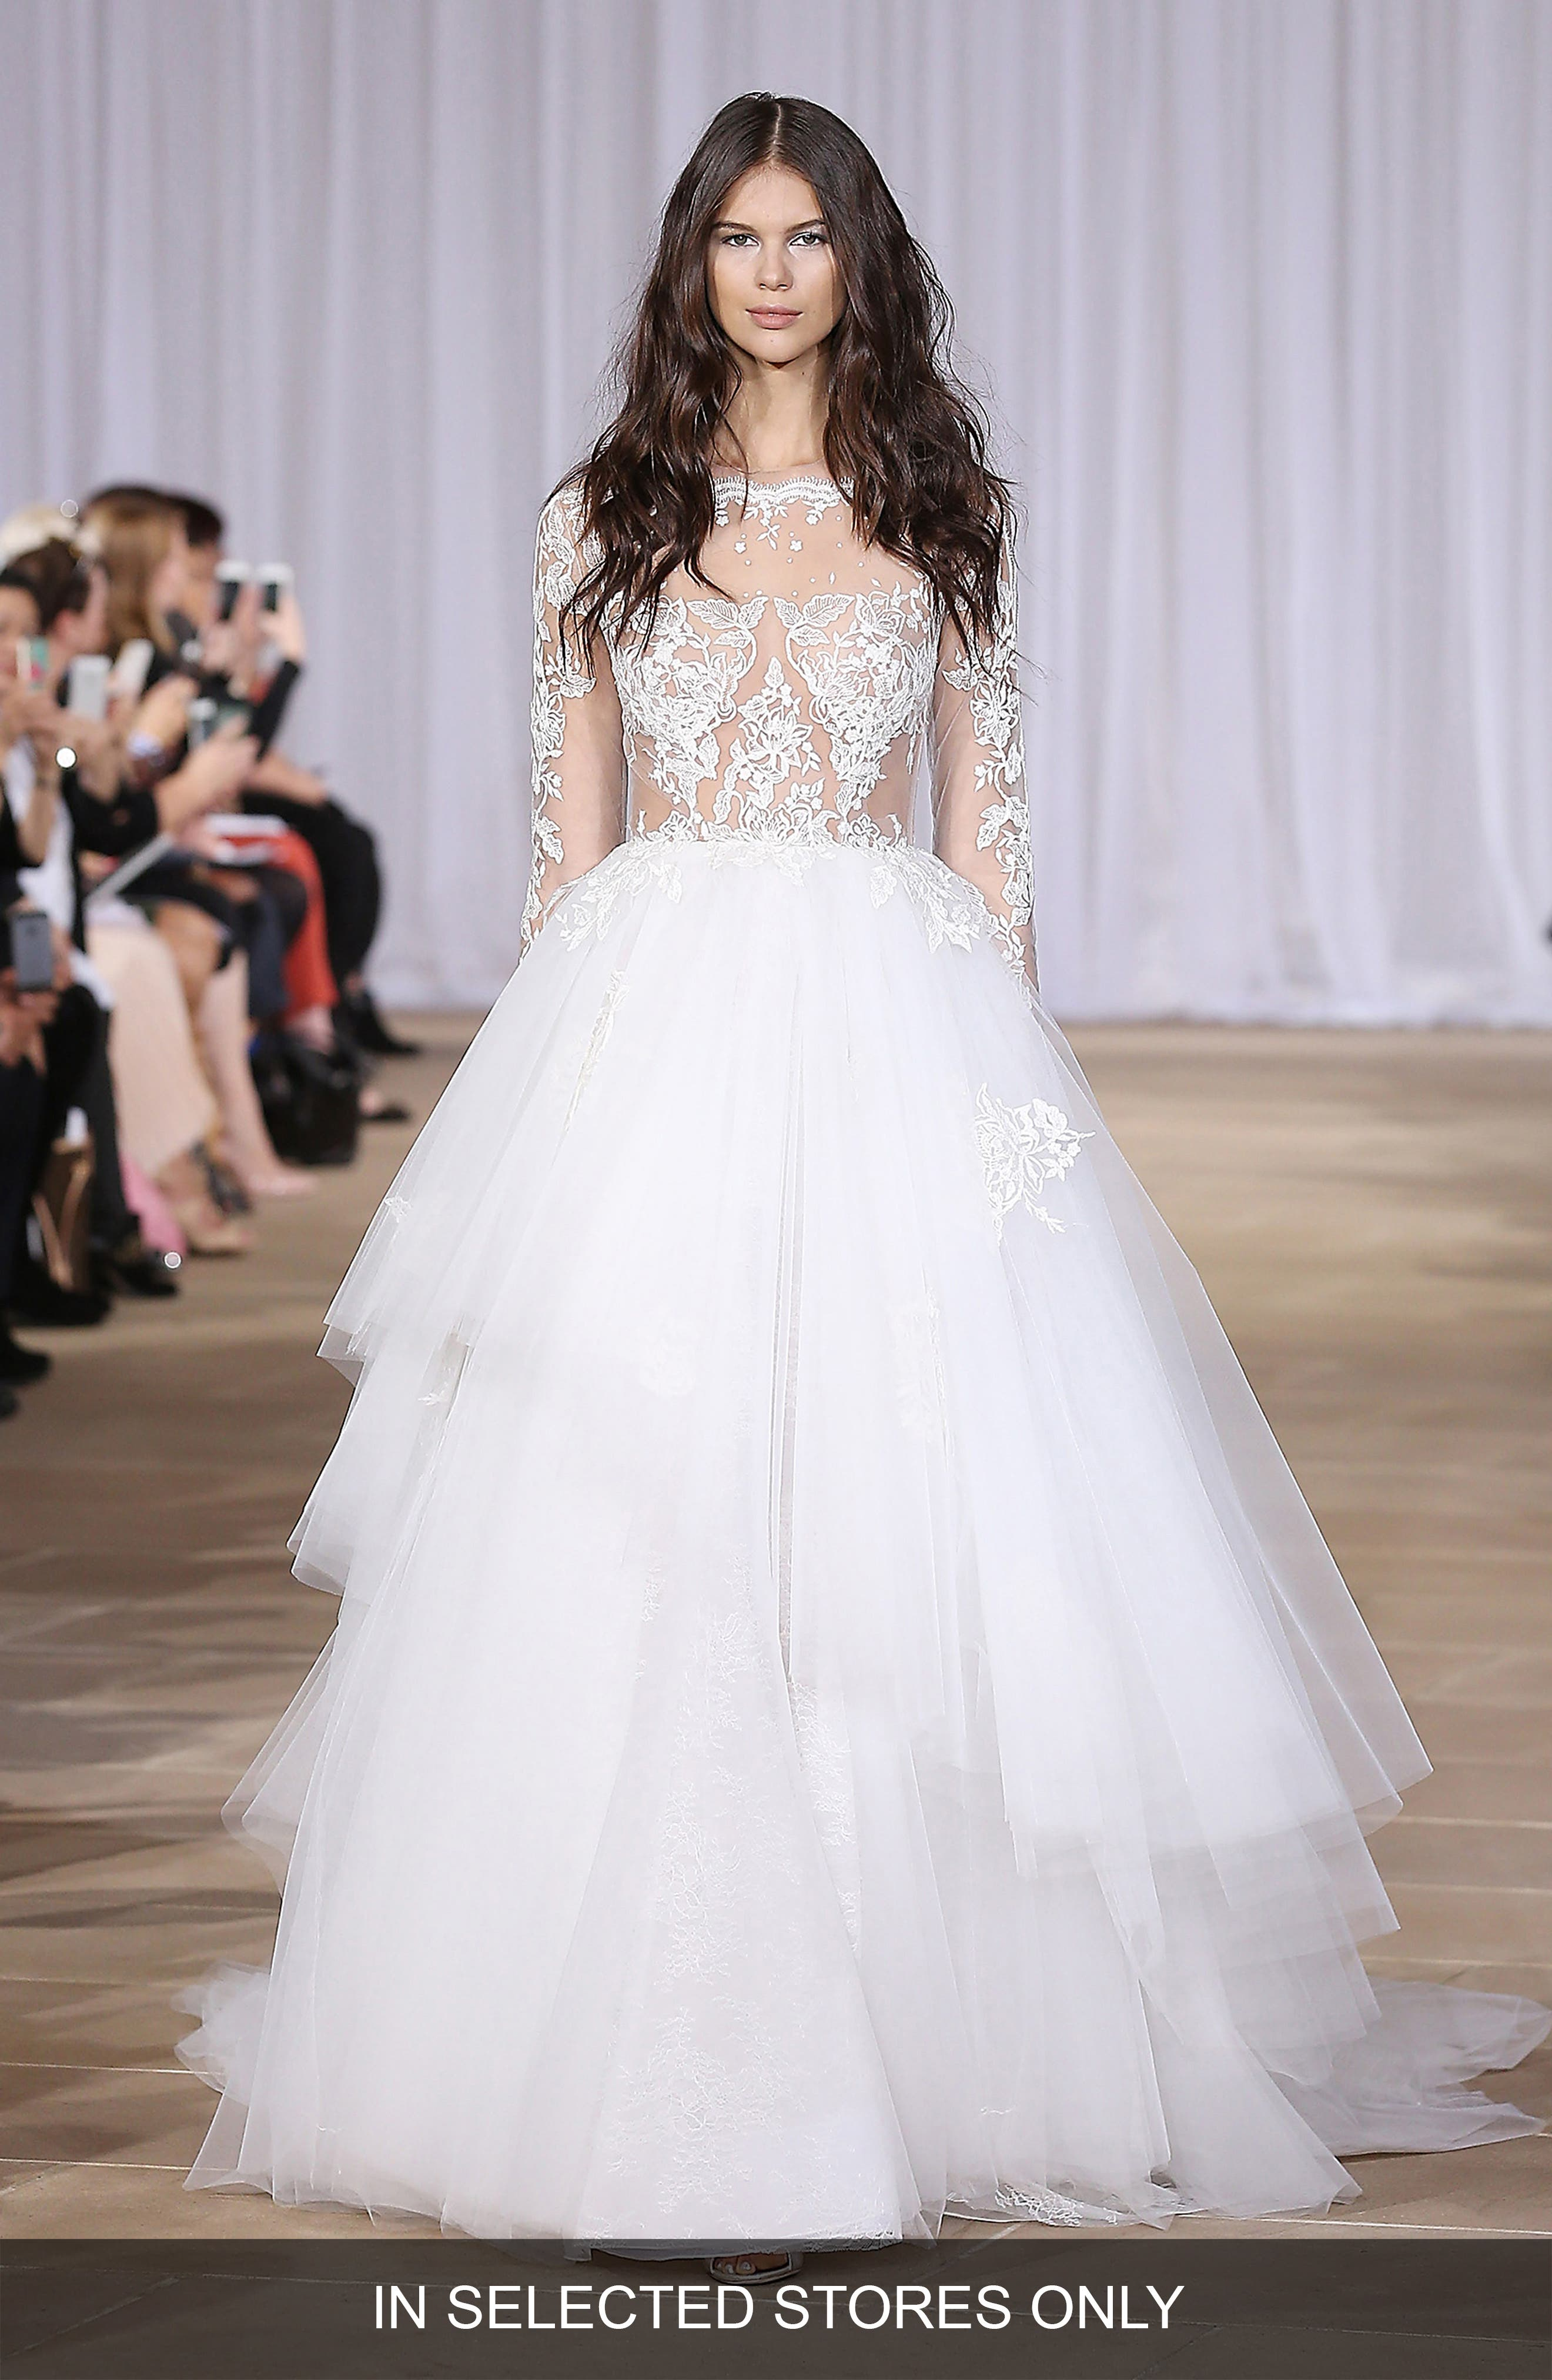 Alternate Image 1 Selected - Ines Di Santo Aliora Embroidered Illusion & Tulle Ballgown